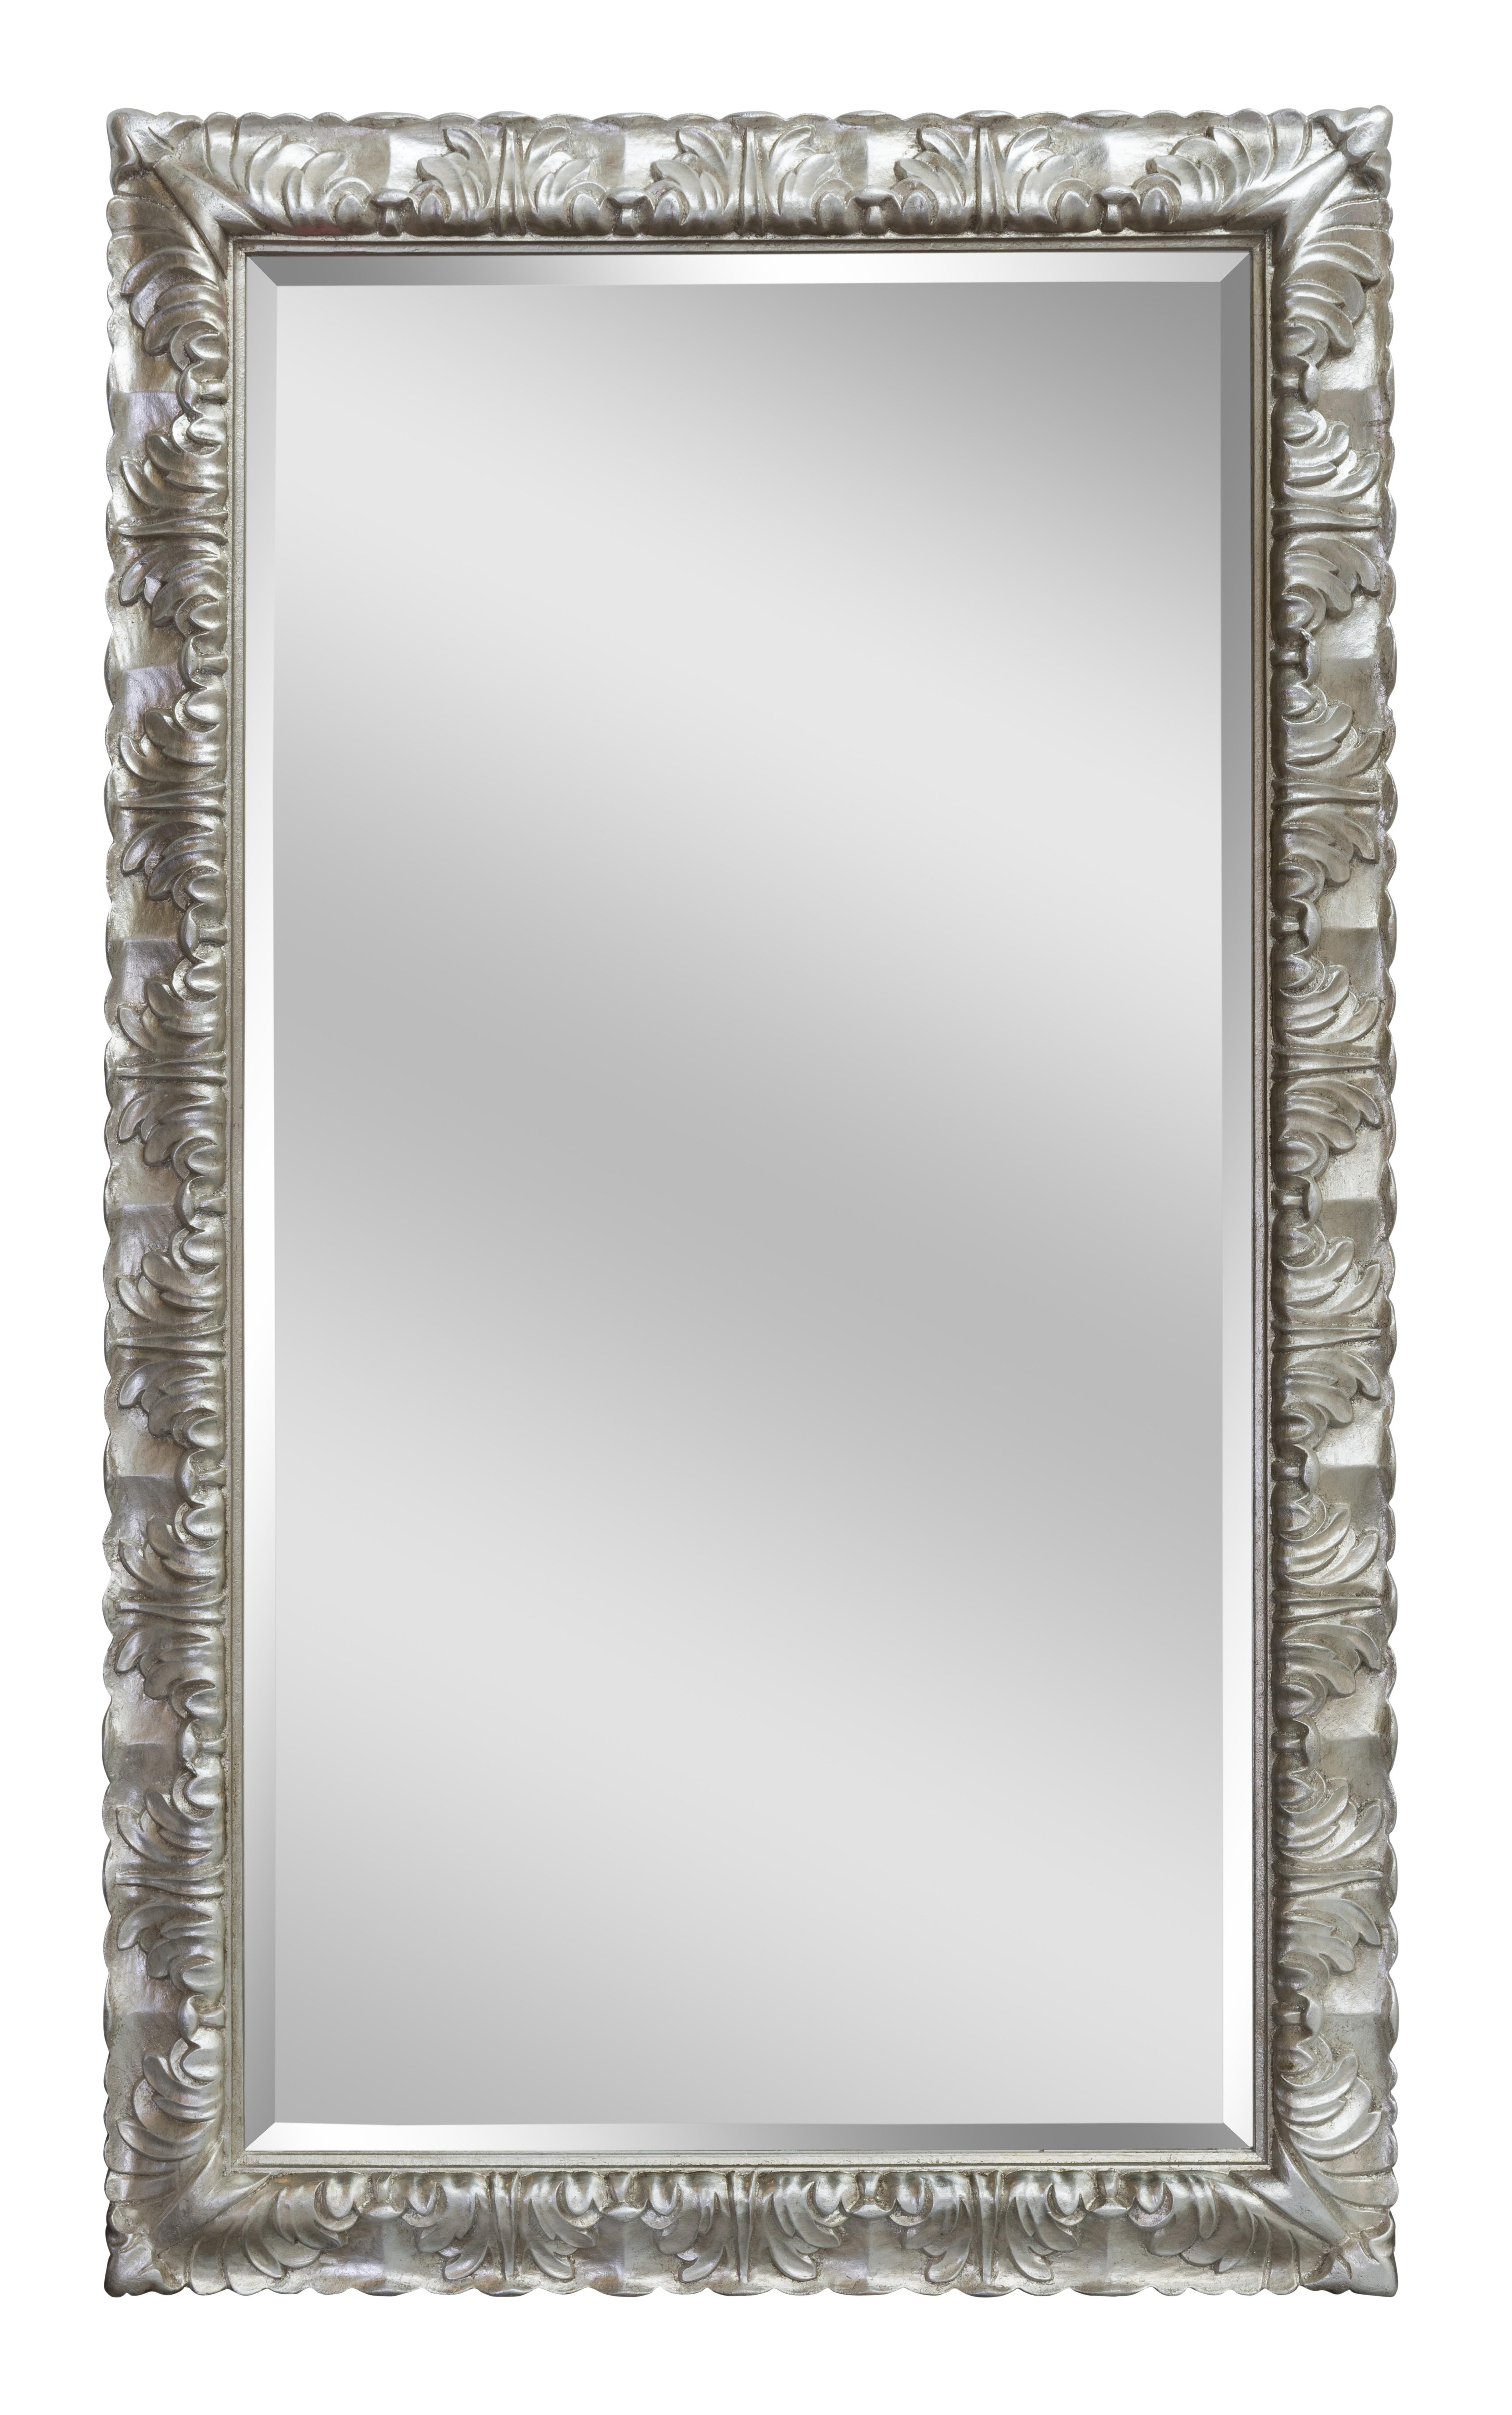 Silver Donatello Long Mirror | Bedroom Mirrors For Sale – Panfili With Regard To Silver Long Mirror (Image 14 of 20)